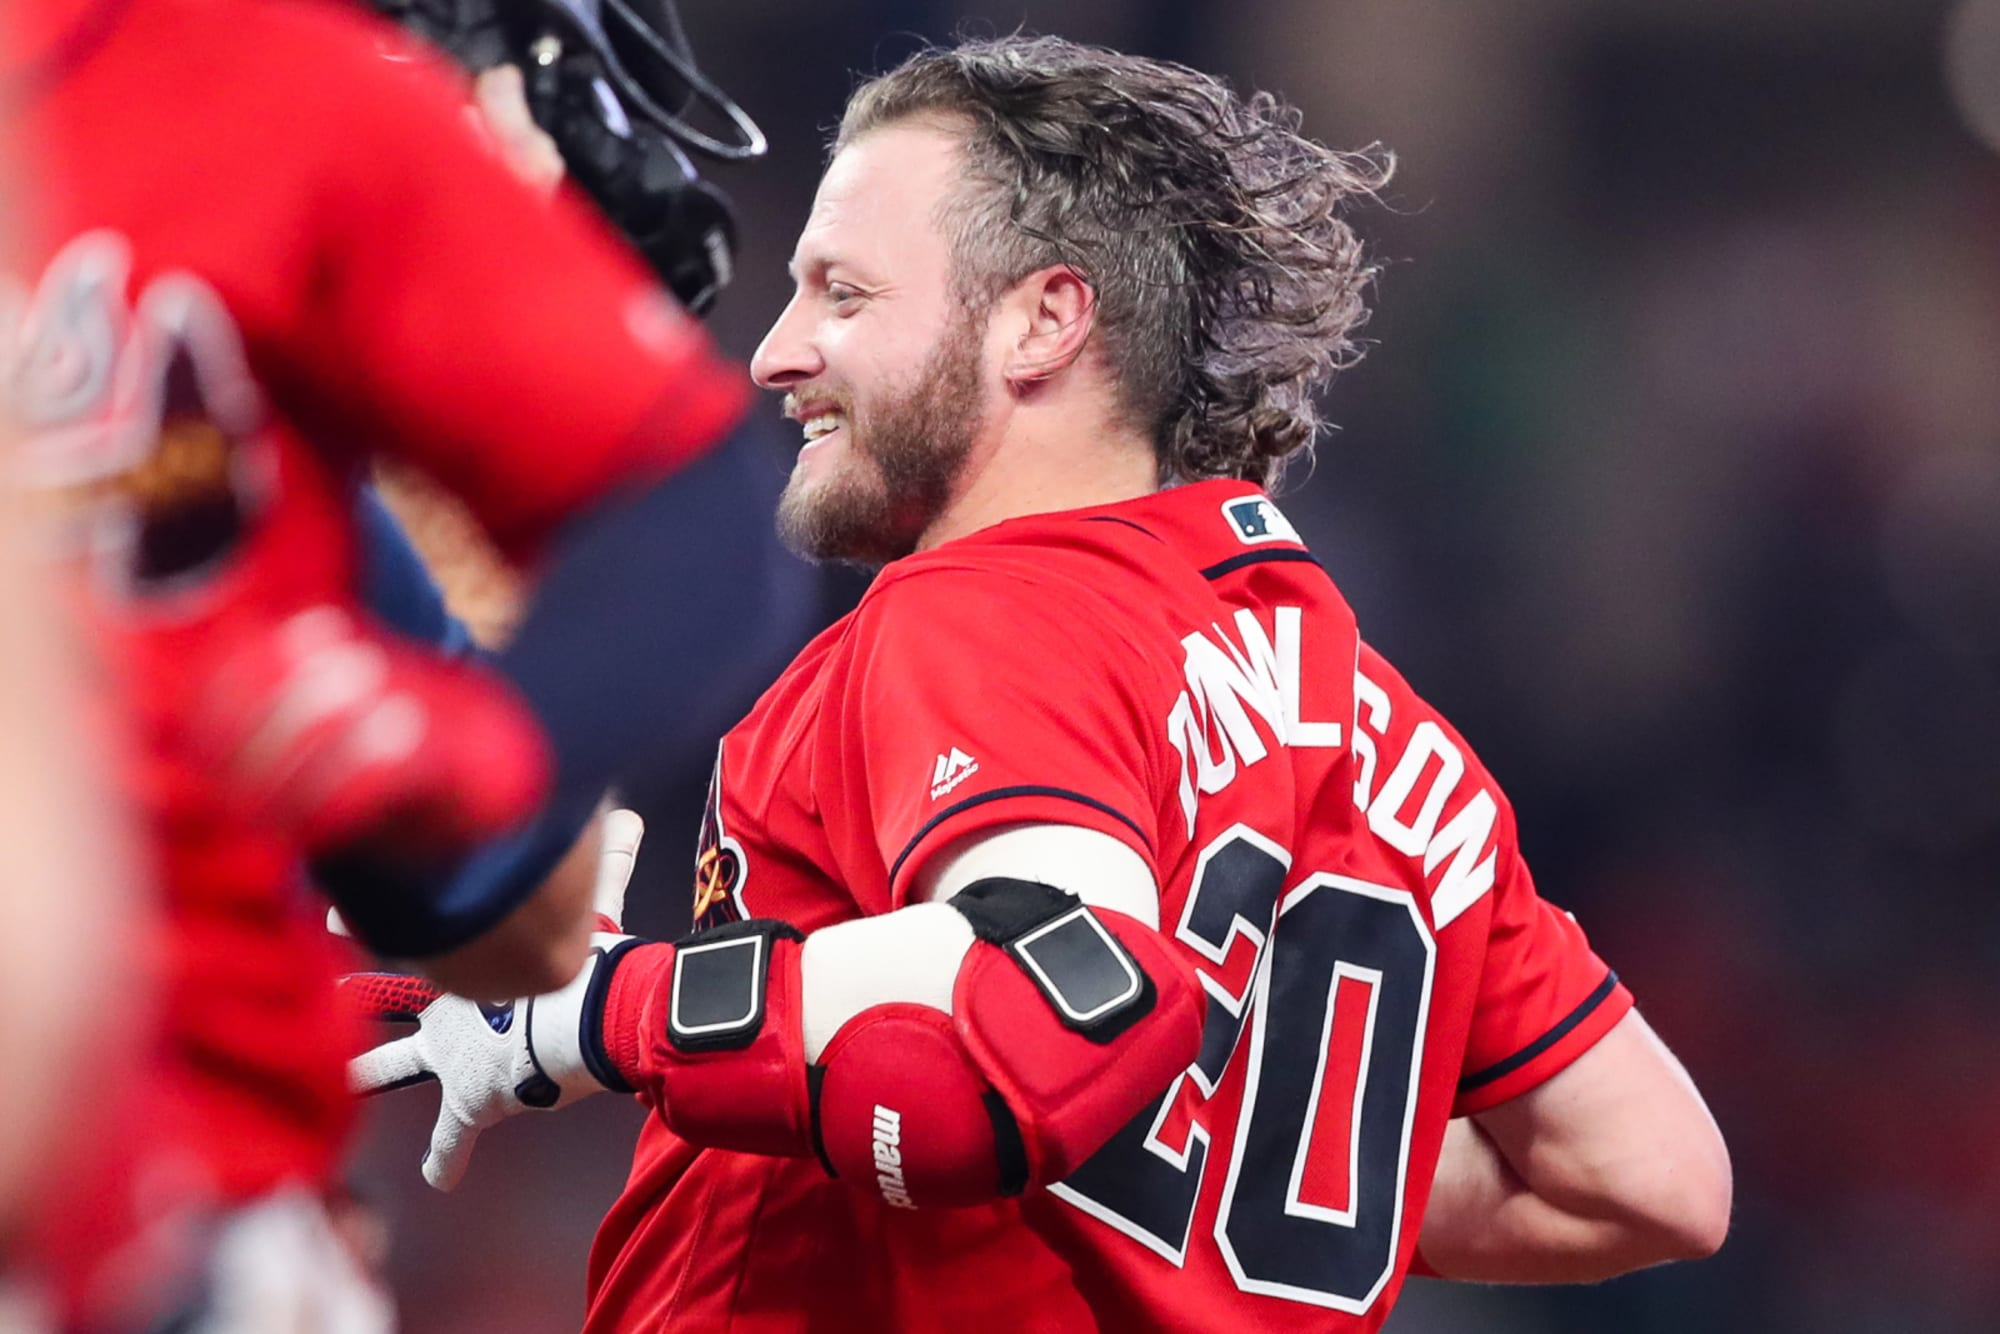 Atlanta Braves Anthopoulos Bringer Of Sadness With Donaldson To Twins